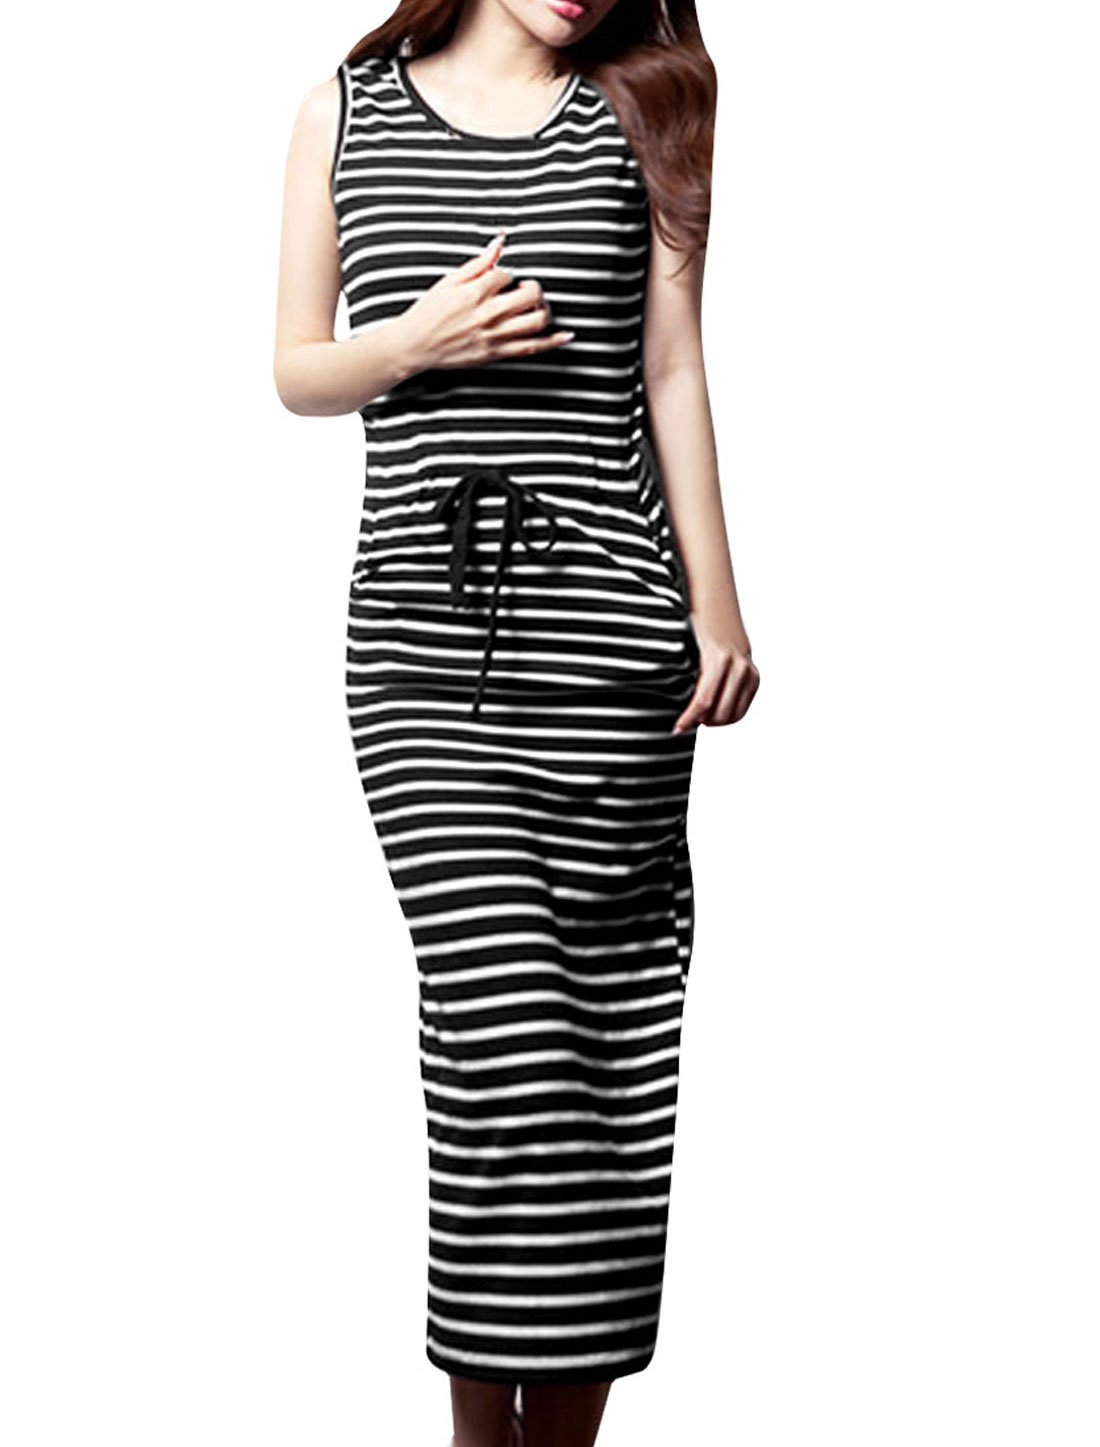 Women Stripes Prints Self Tie String Sheath Modern Dress Black XS